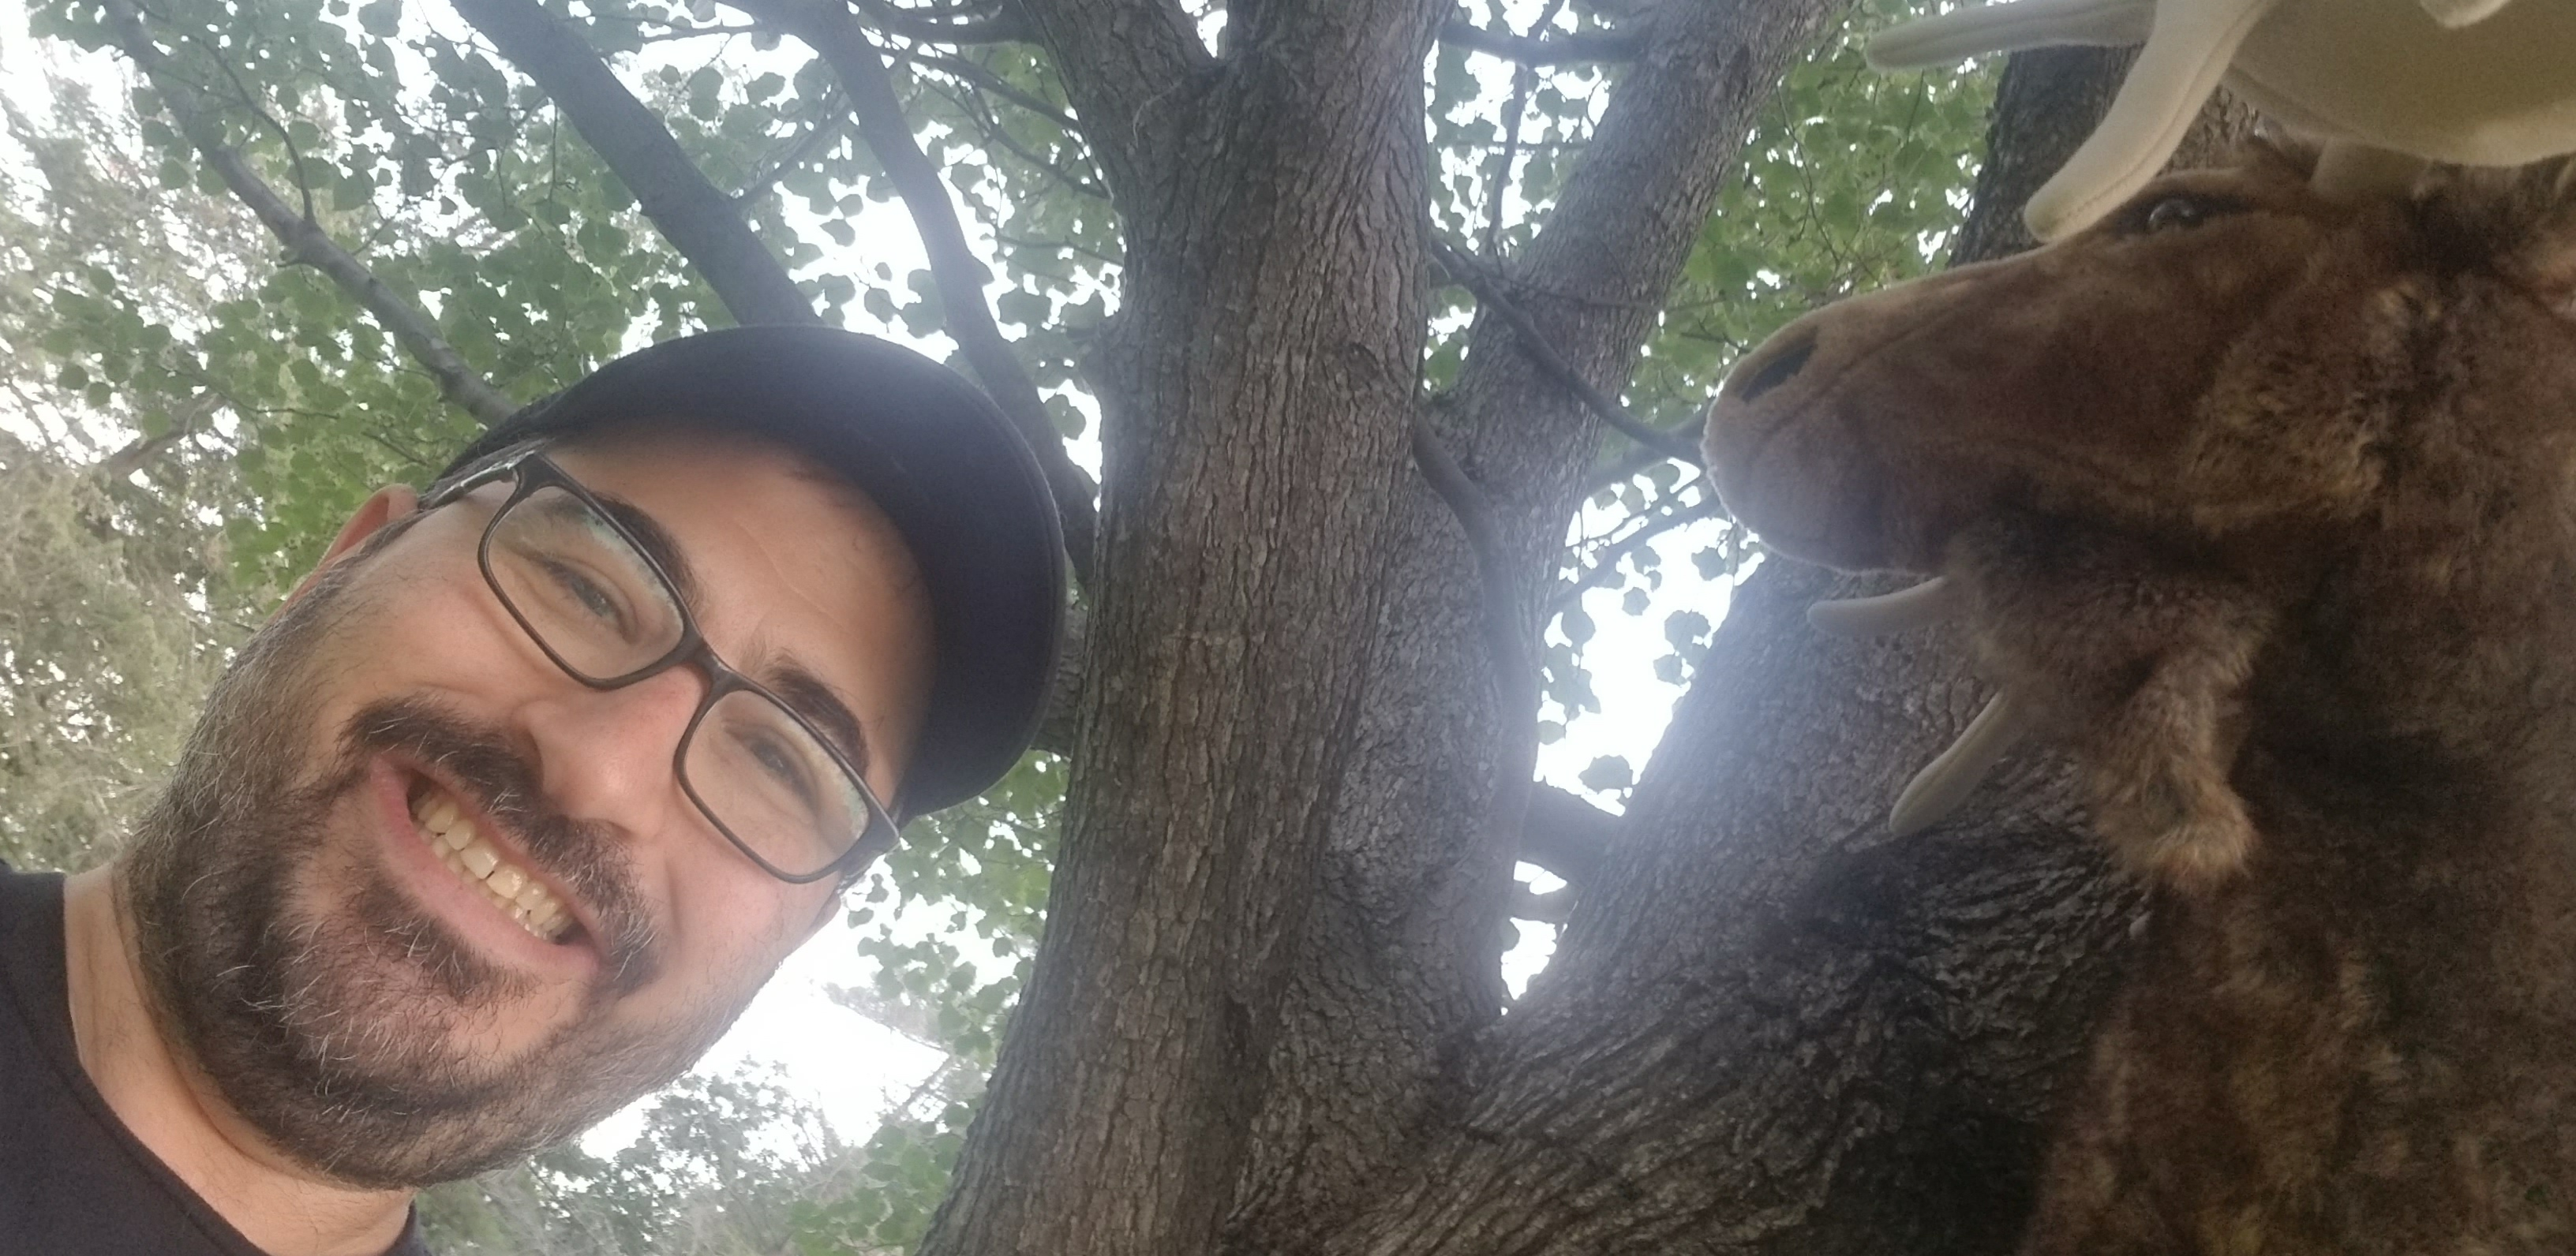 Hey, I found the Moose hiding in a tree!!!